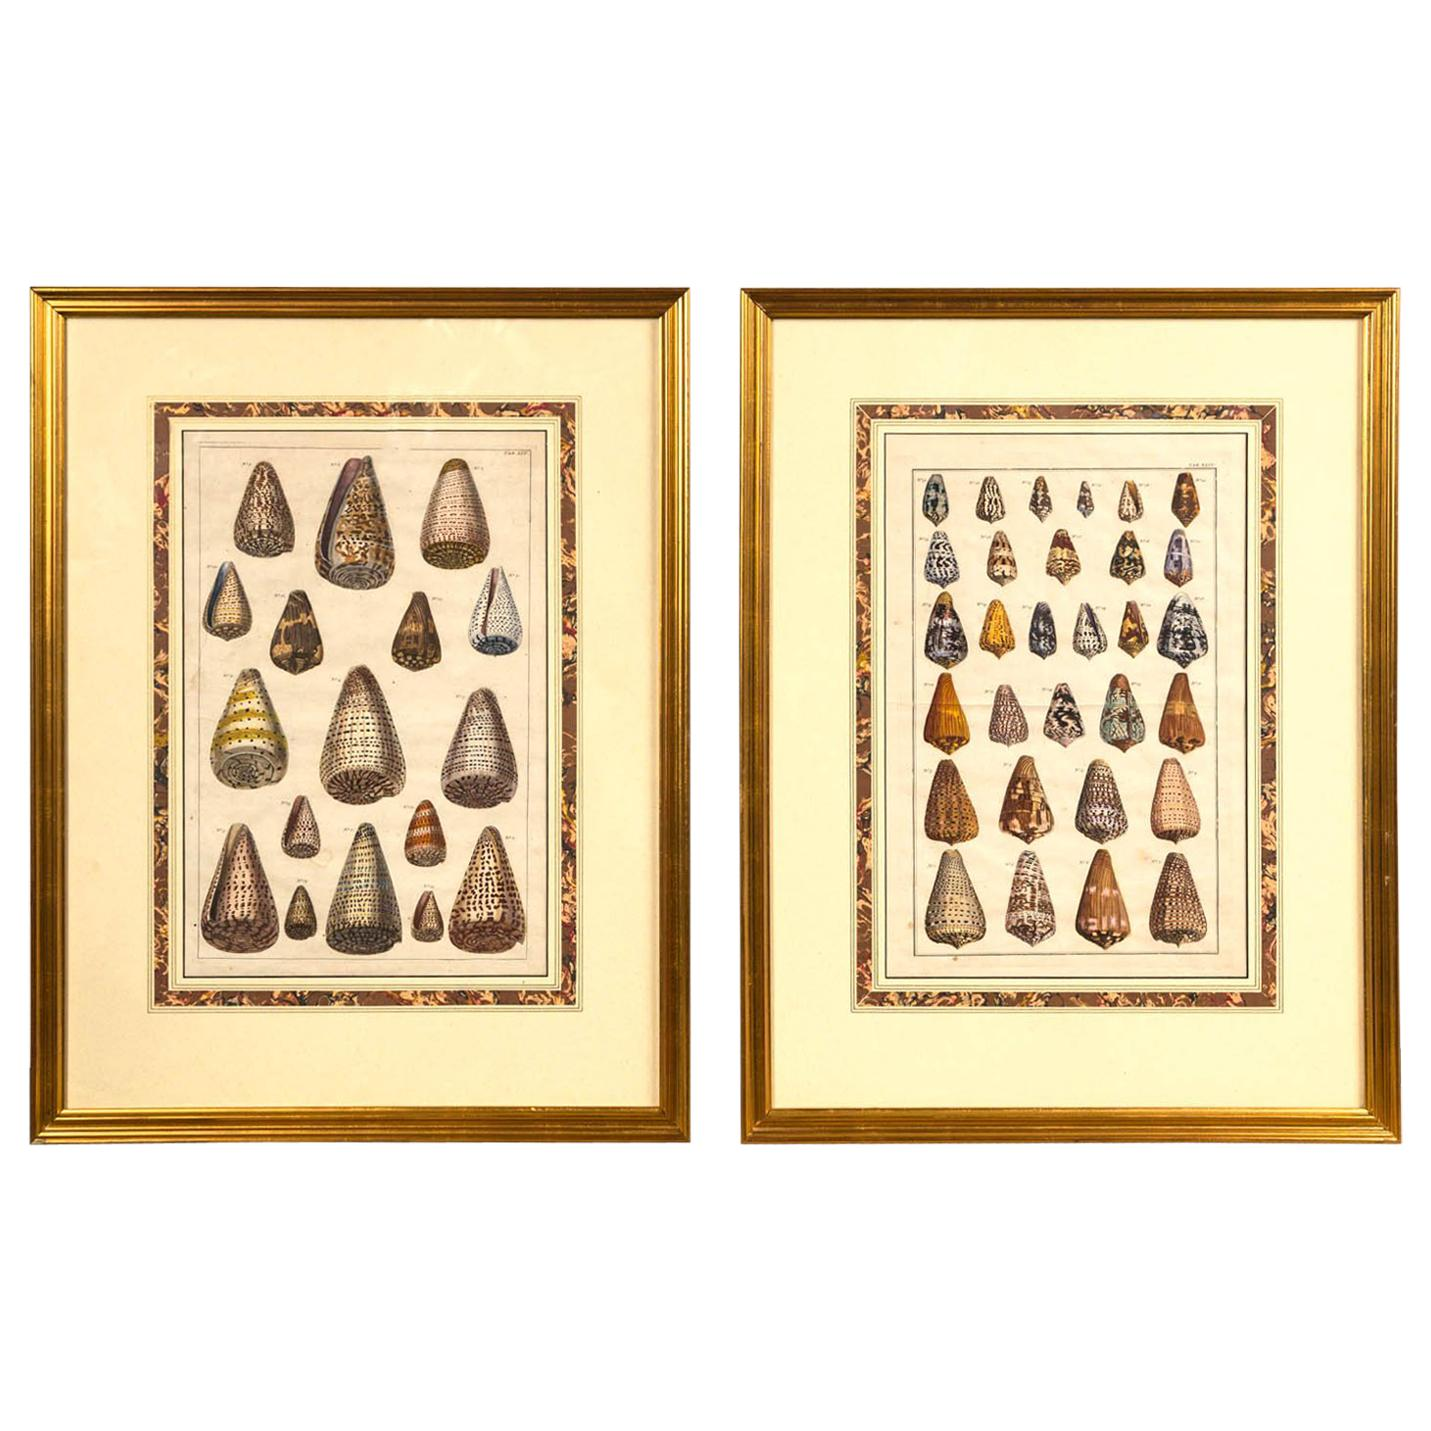 Pair of Framed Hand-Colored Lithographs of Shell Species, 19th Century